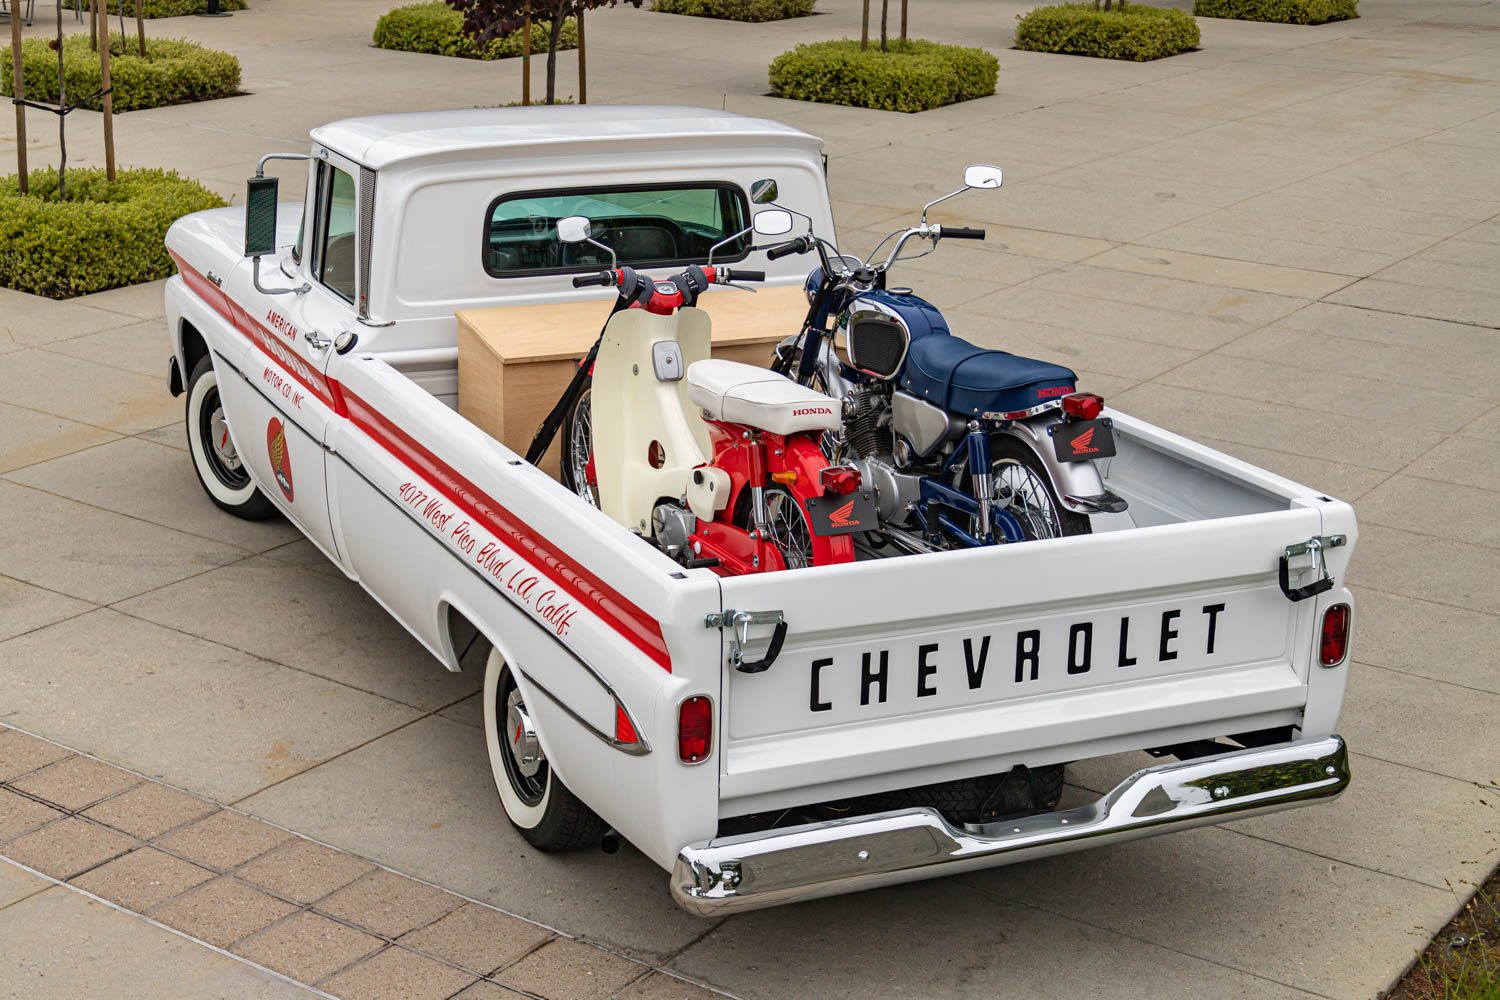 American Honda 60th Anniversary Chevy Delivery Truck rear